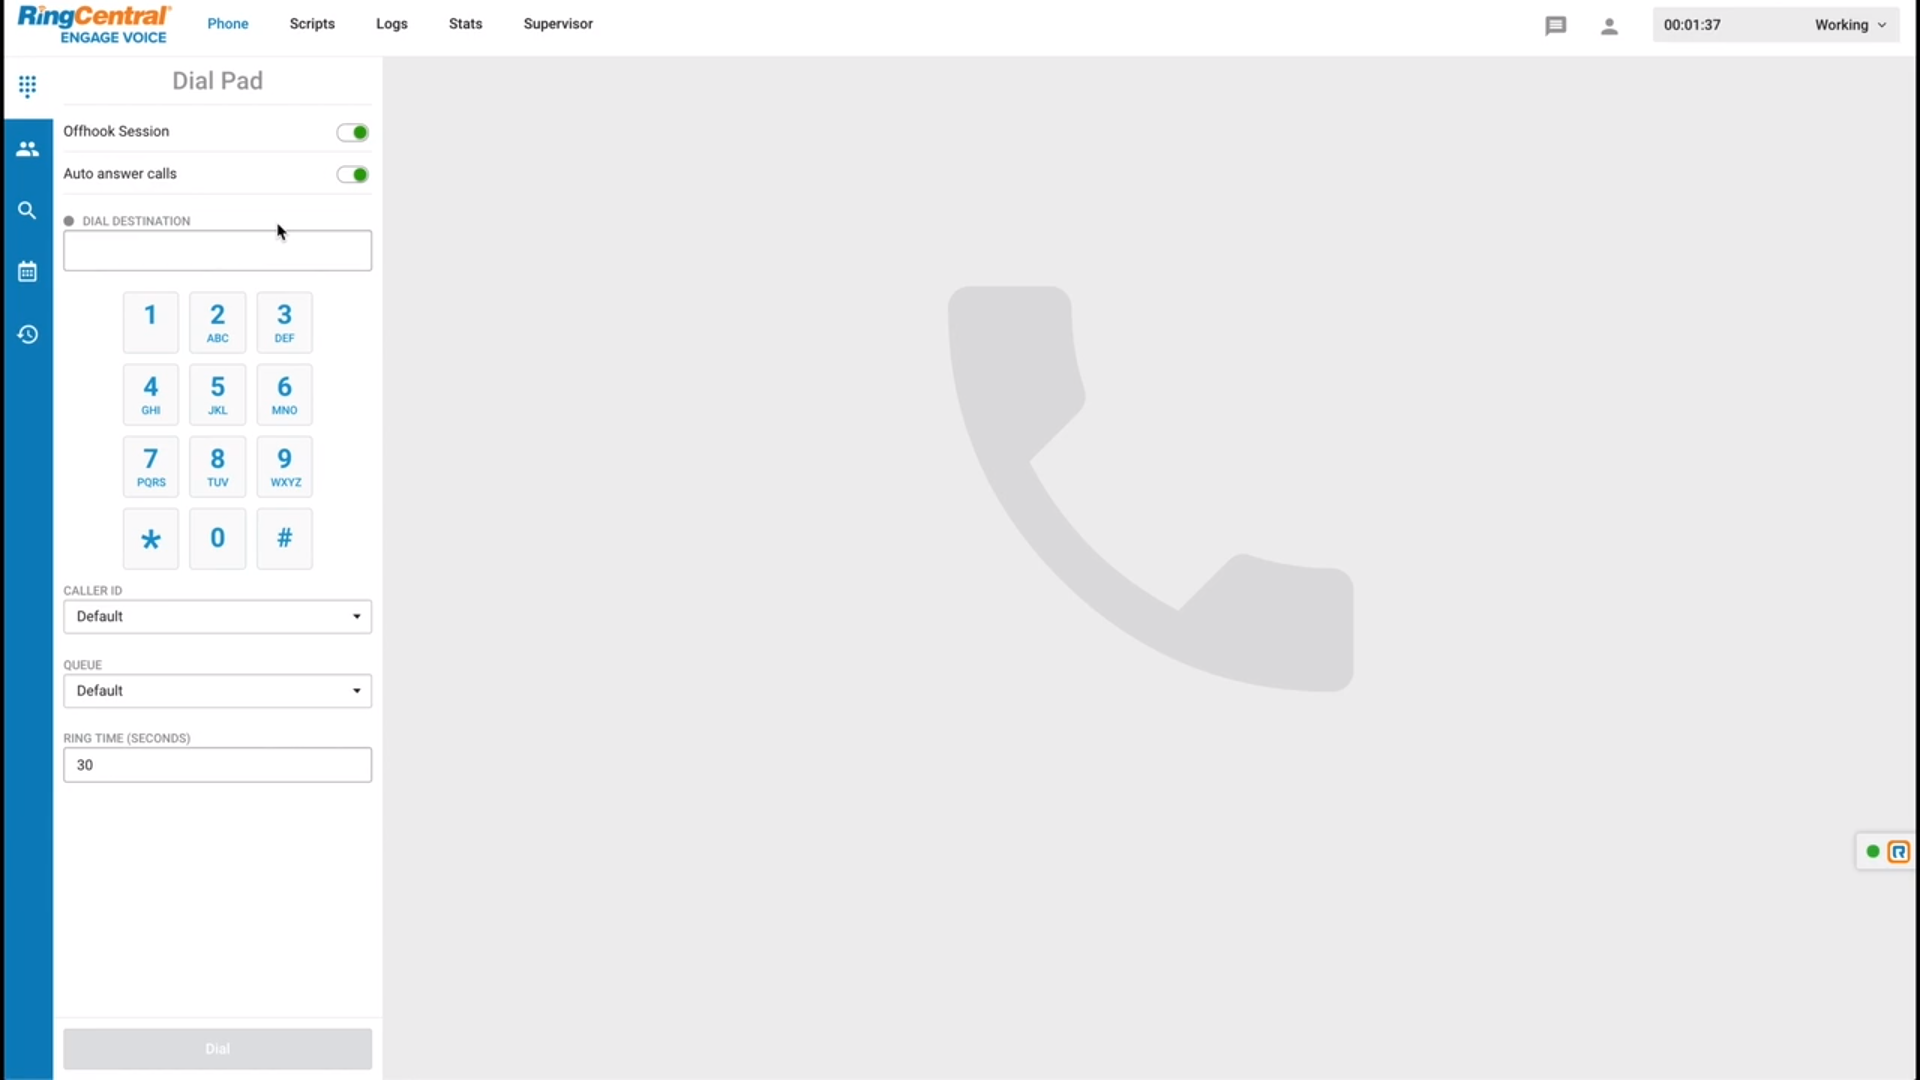 RingCentral Engage Voice dial pad screenshot